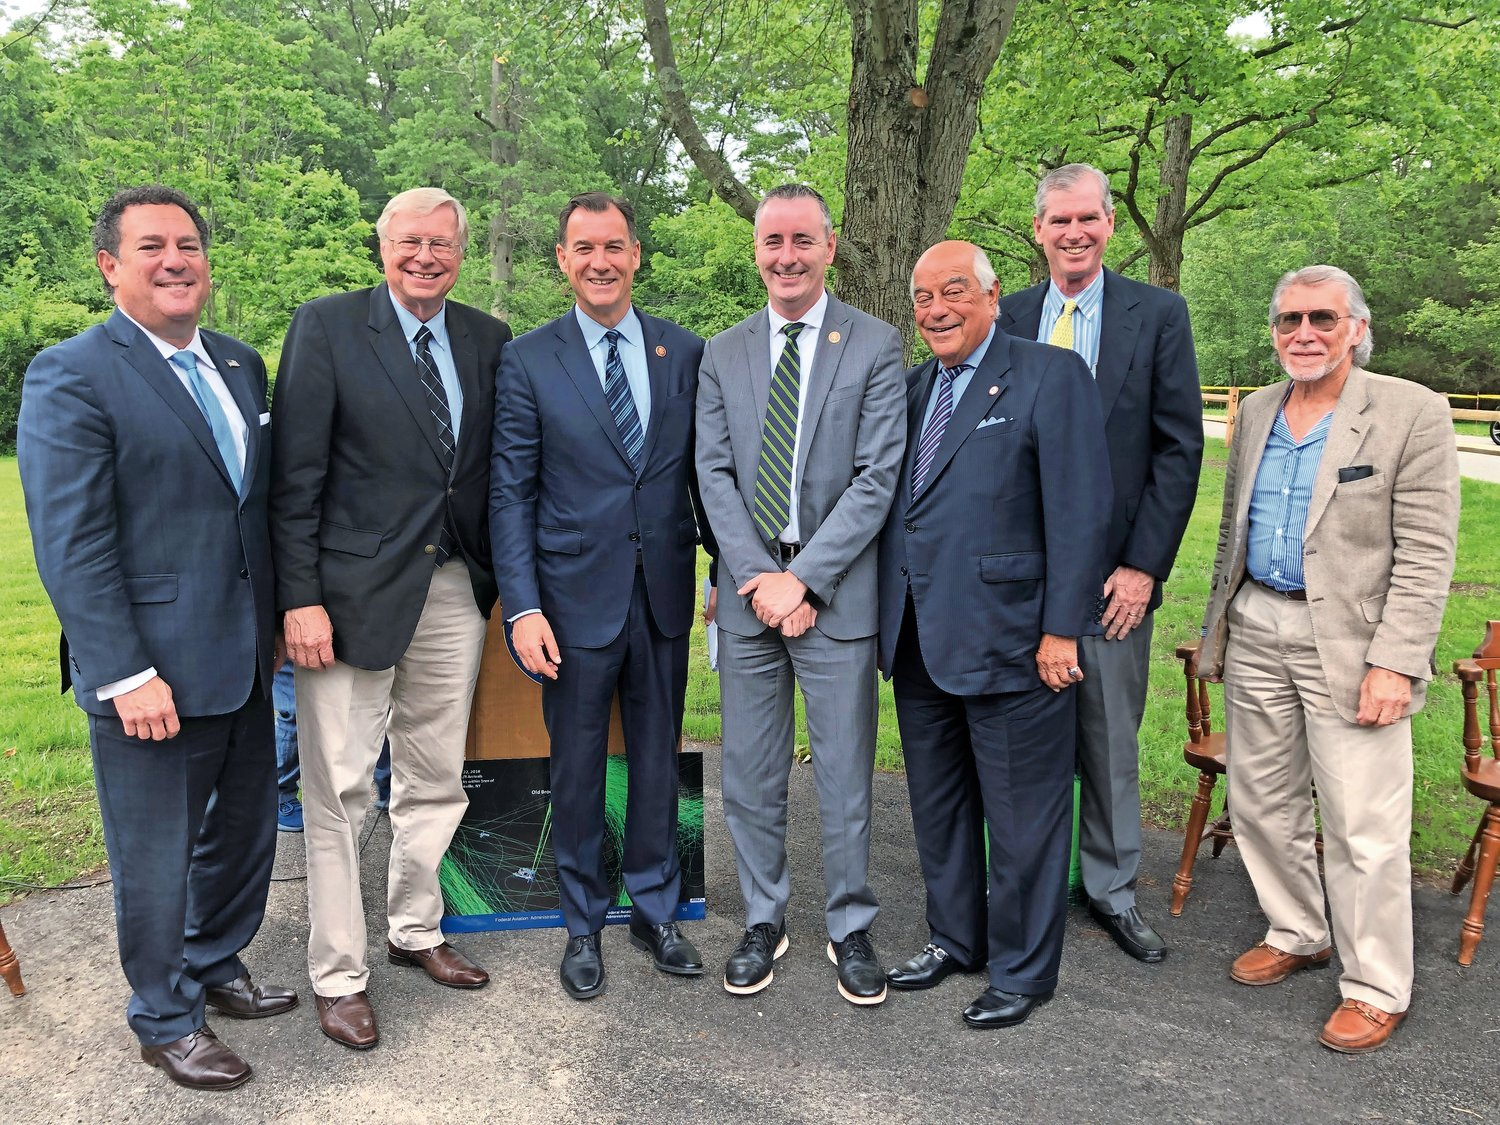 Attending the press conference were, from left, Daniel Serota, Brookville mayor; Bernie Ryba, Old Brookville mayor; U.S. Rep. Tom Suozzi; Rep. Brian Fitzpatrick, whose suburban Philadelphia district is similarly affected by aircraft traffic and noise; Marvin Natis, North Hills mayor; Ed Madden,Upper Brookville deputy mayor, and Paul Peters, Roslyn Estates mayor.